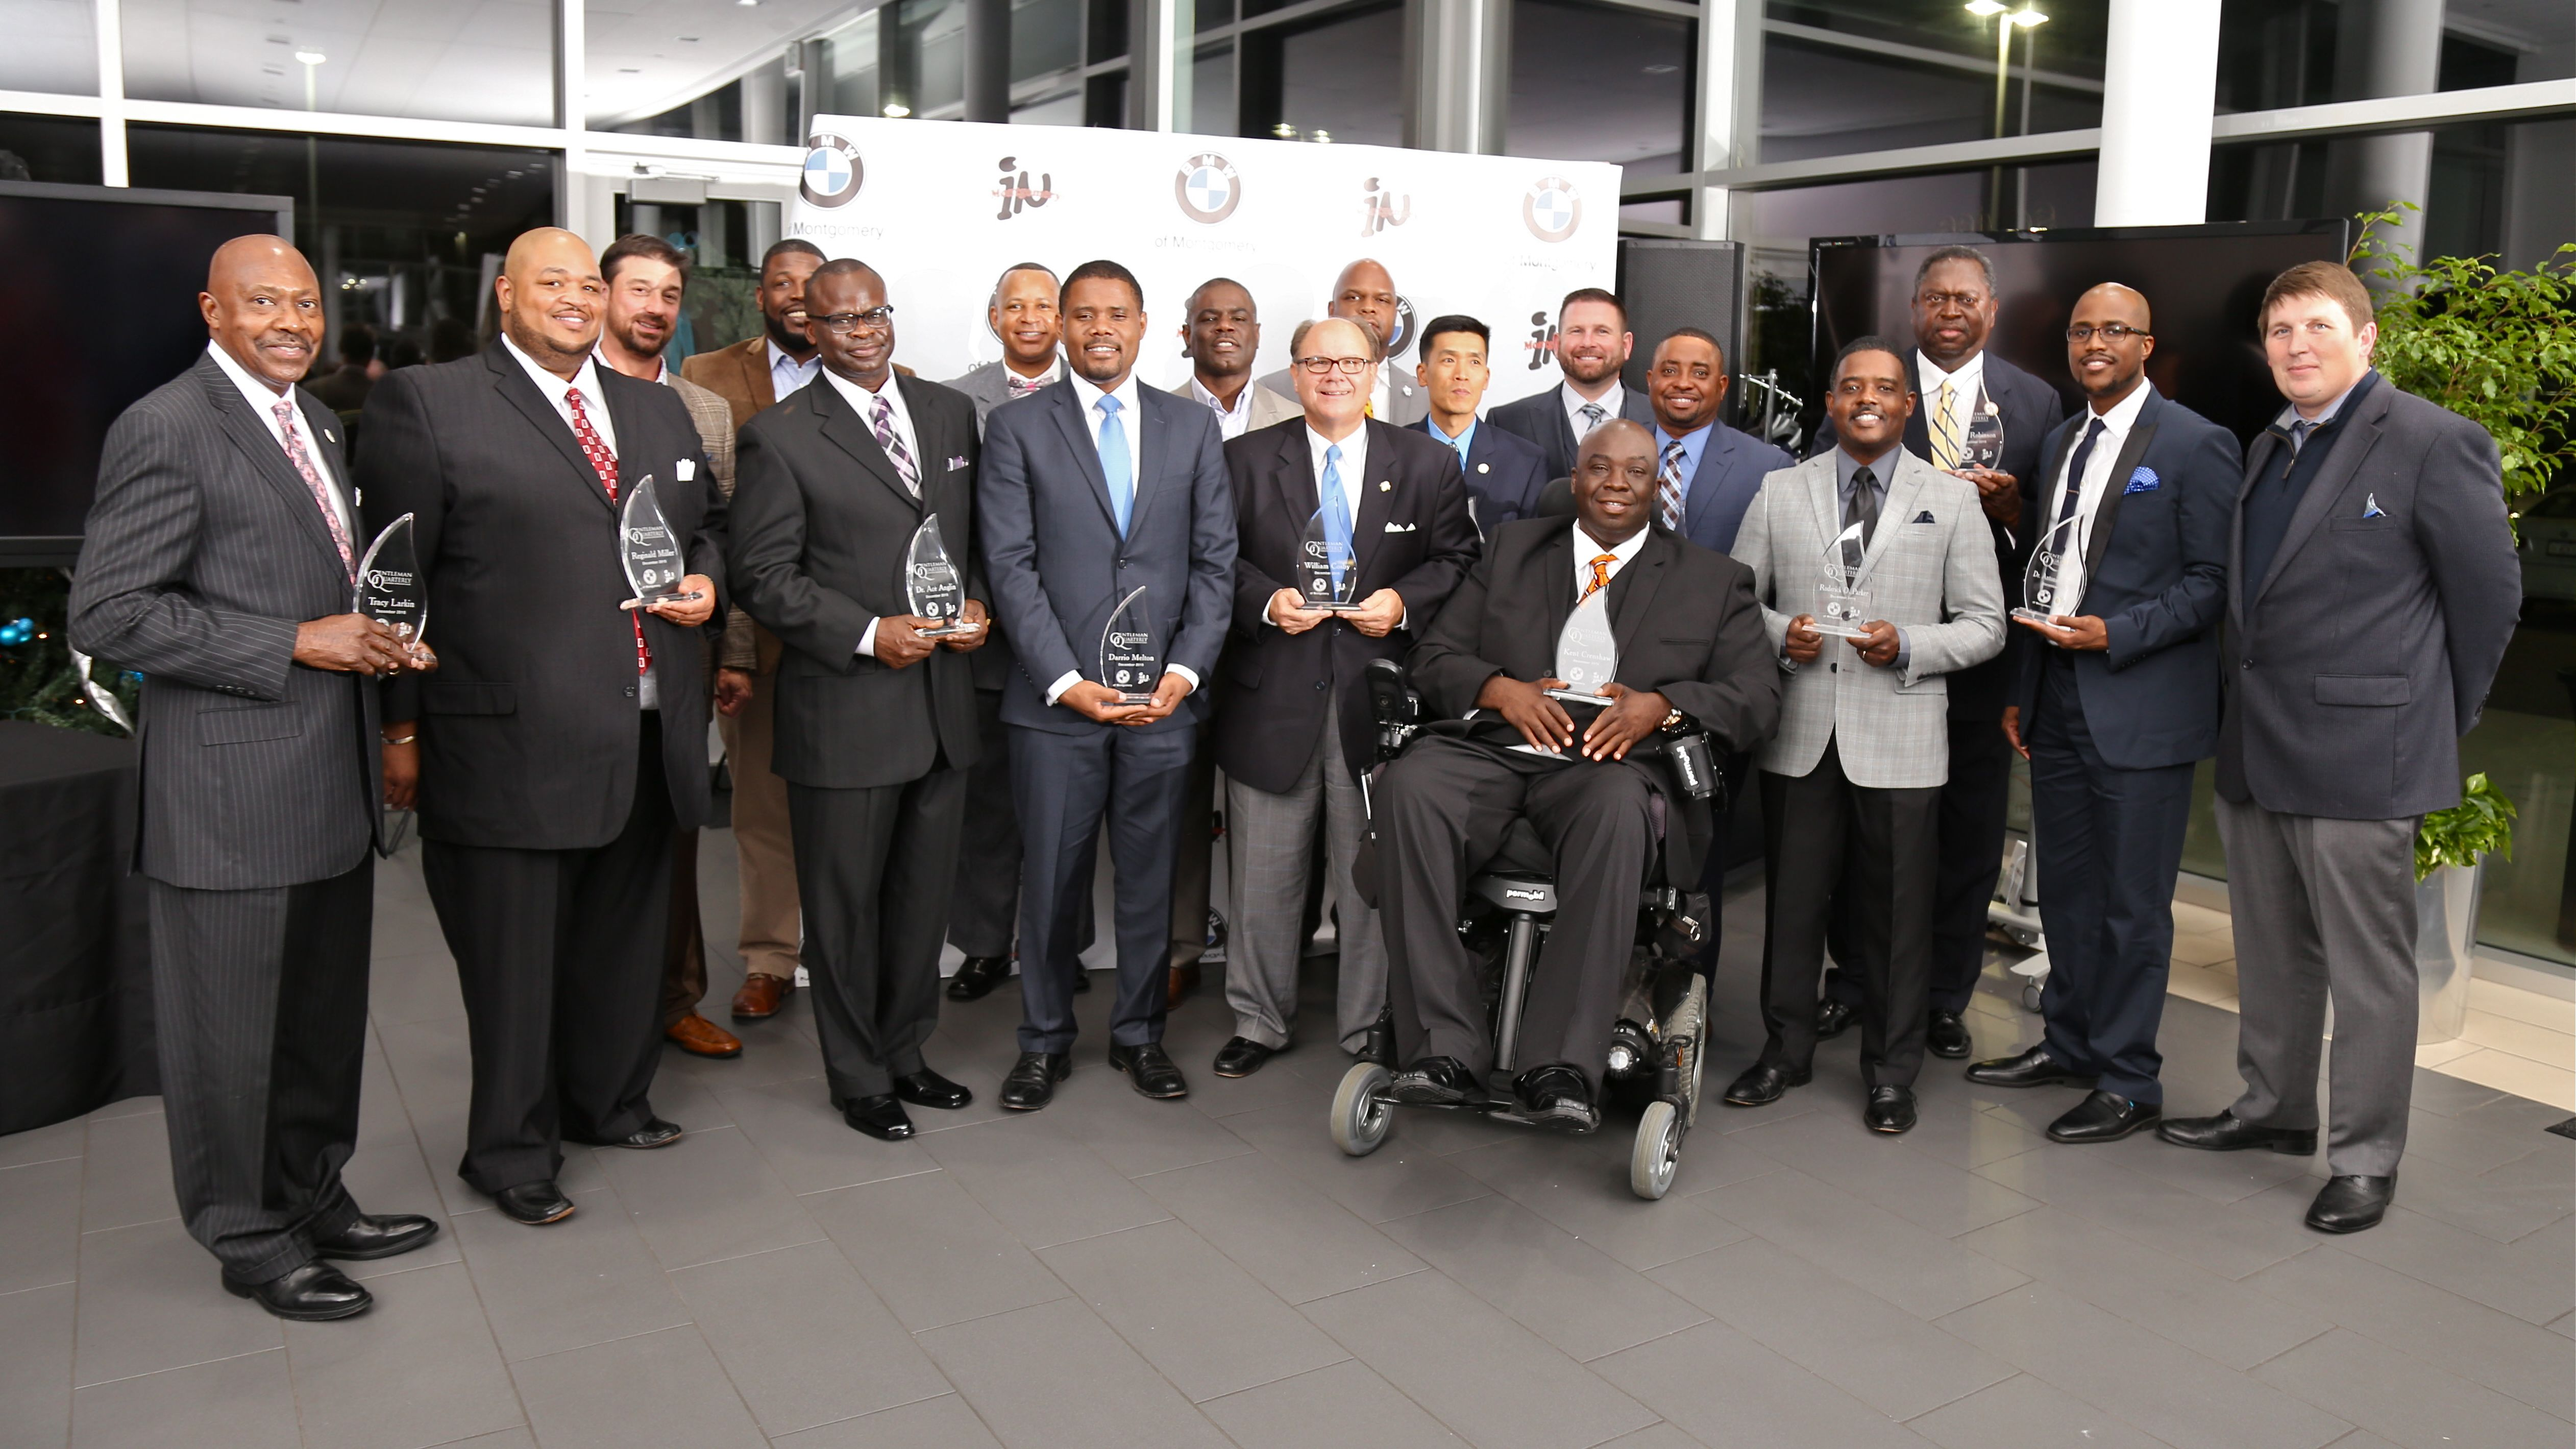 GQHAAward presented by BMW of Montgomery & inMMGroup